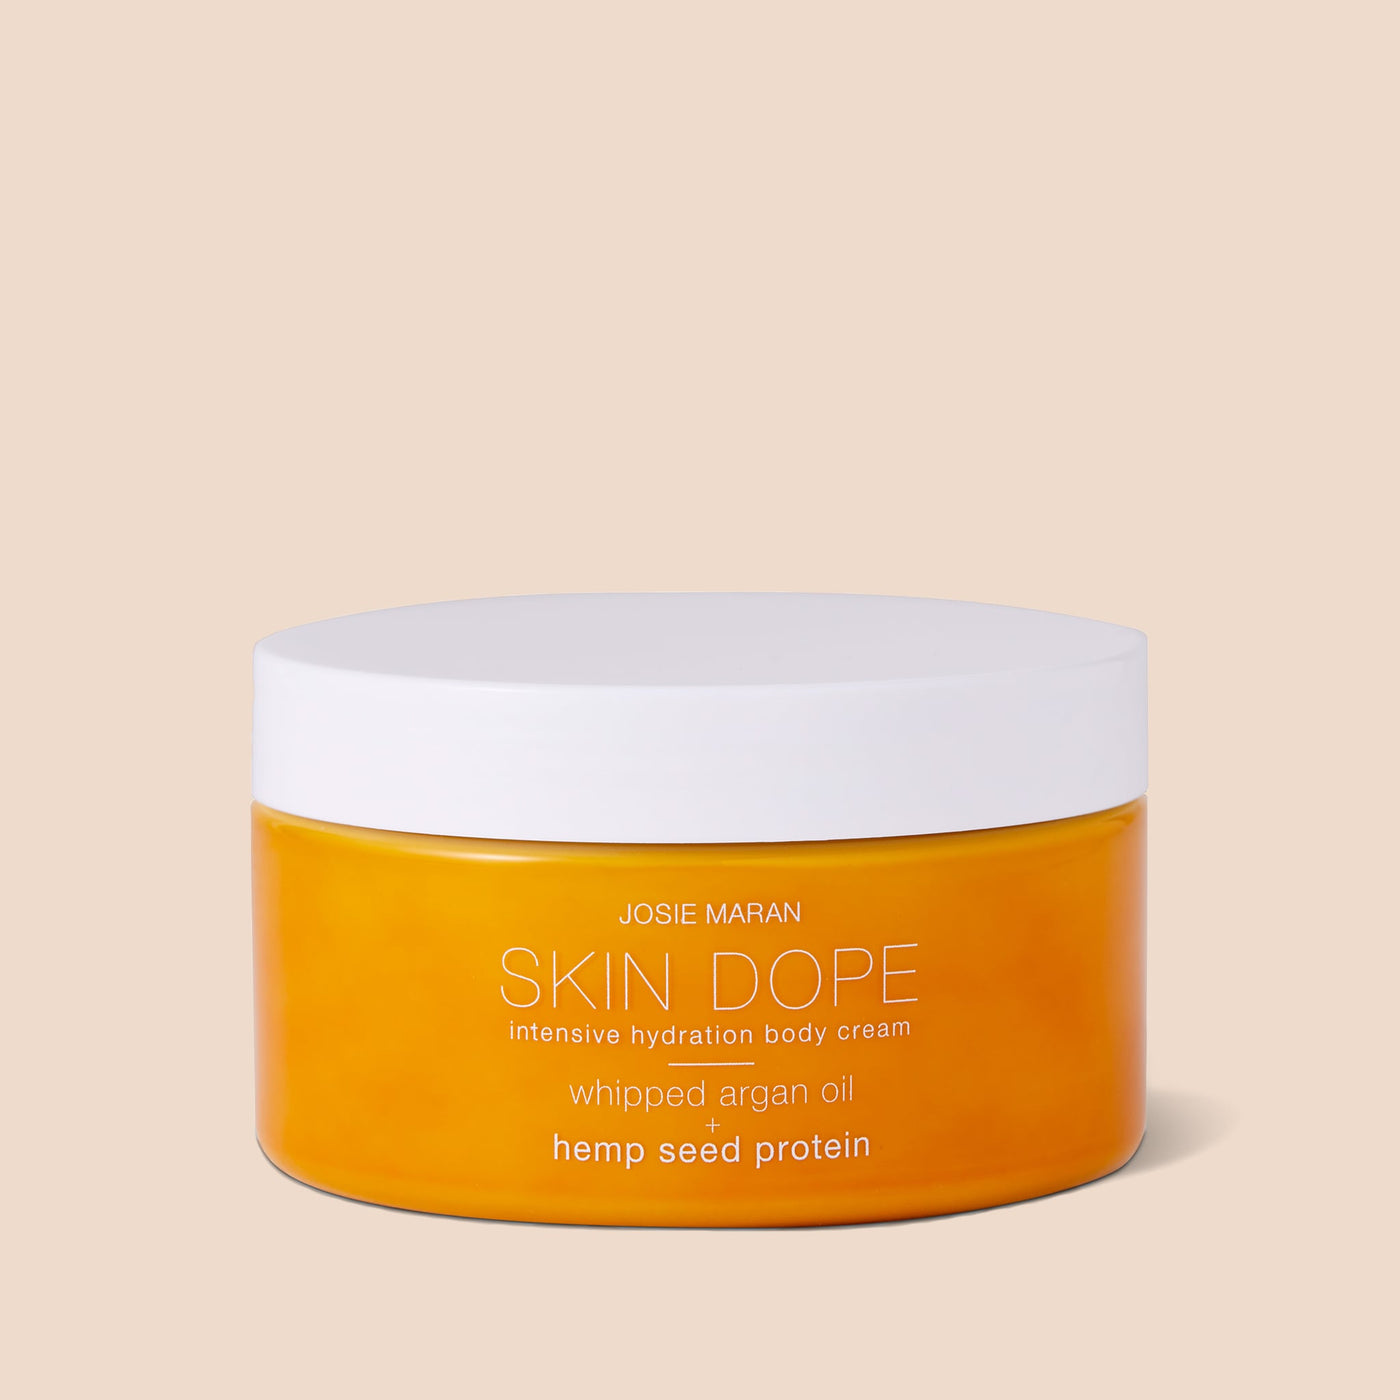 SKIN DOPE INTENSIVE HYDRATION BODY CREAM